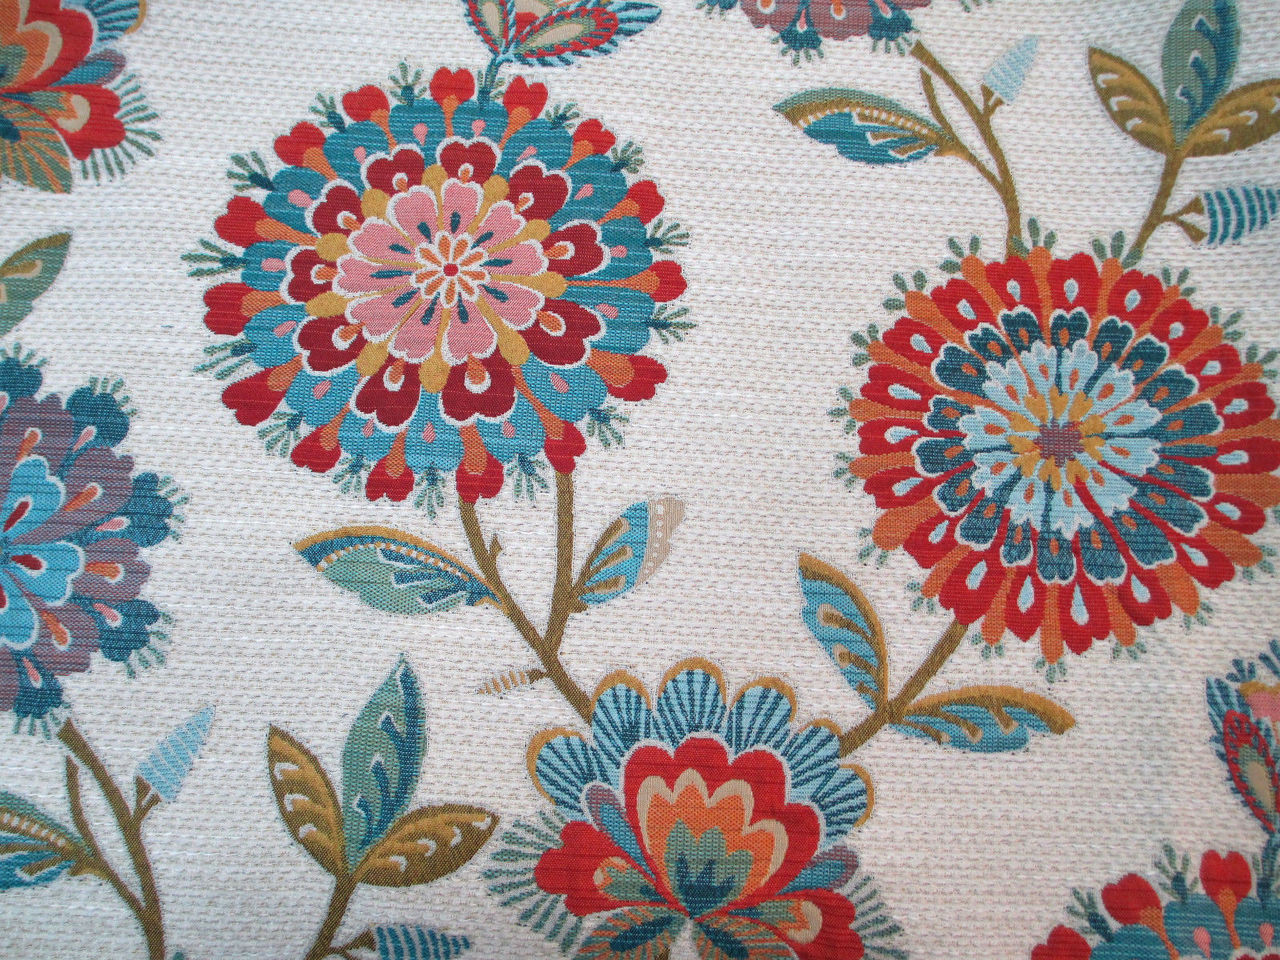 Richloom Upholstery Drapery Periwinkle Jewel Chenille Floral